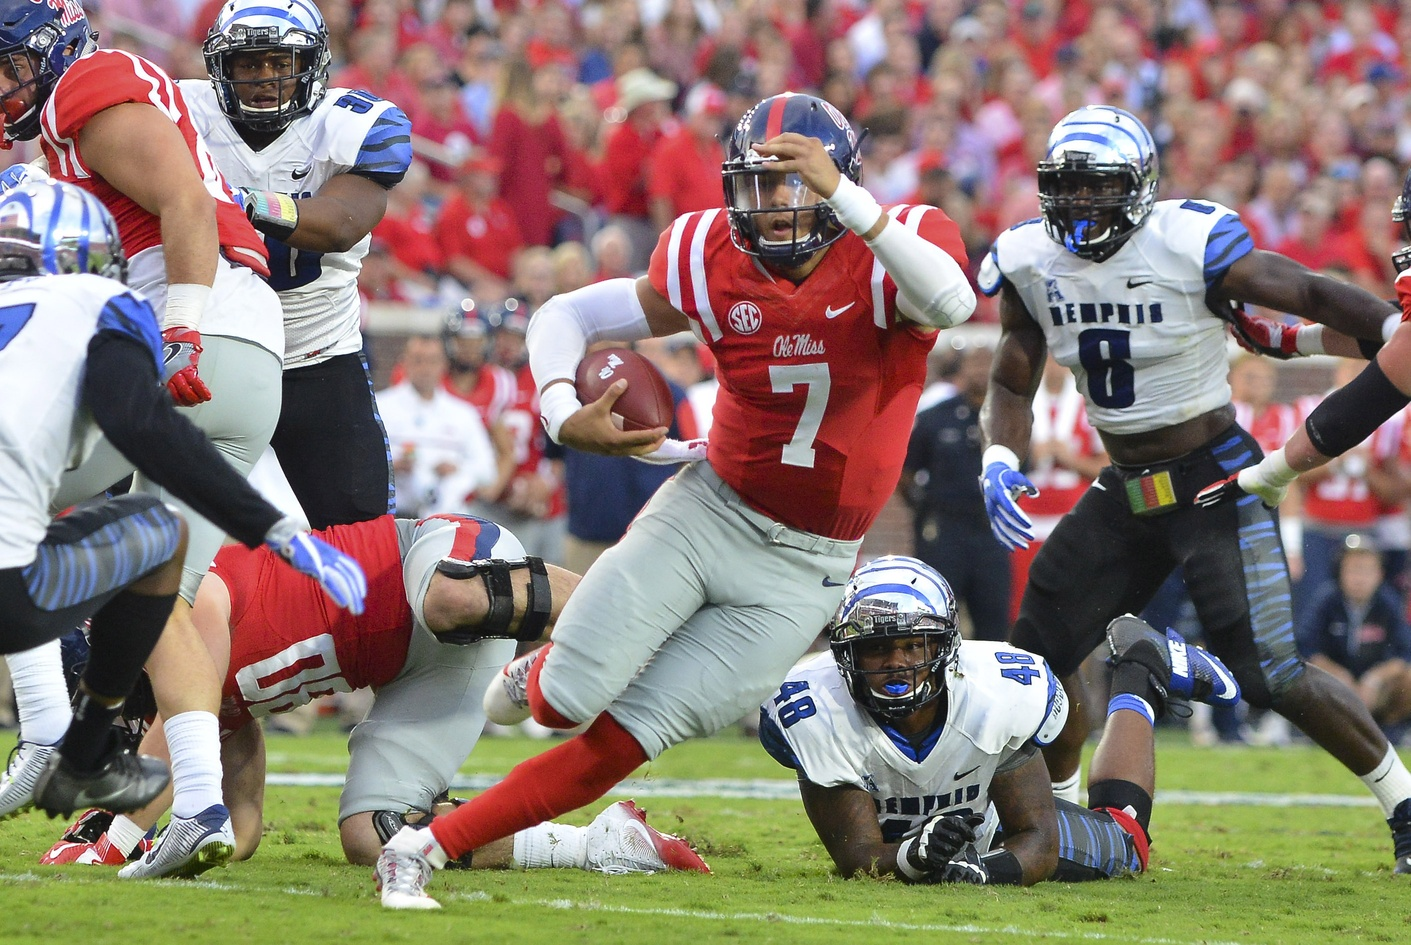 Oct 1, 2016; Oxford, MS, USA; Mississippi Rebels quarterback Jason Pellerin (7) runs the ball during the first quarter of the game against the Memphis Tigers at Vaught-Hemingway Stadium. Mandatory Credit: Matt Bush-USA TODAY Sports